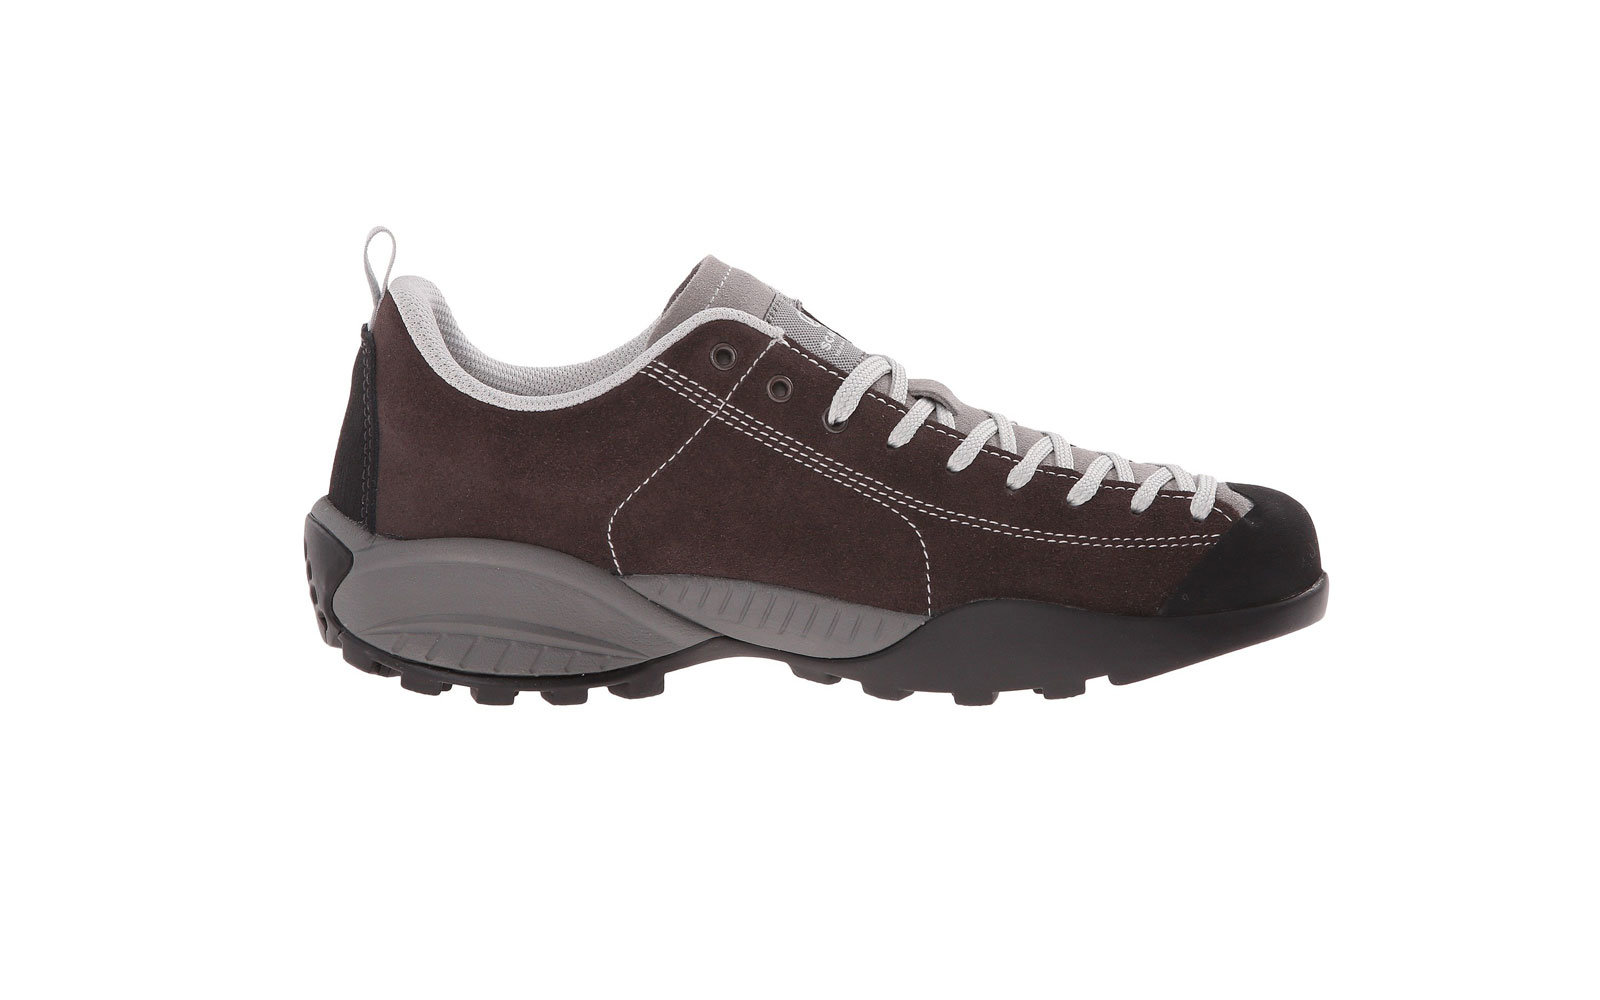 Mens High Arch Walking Shoes